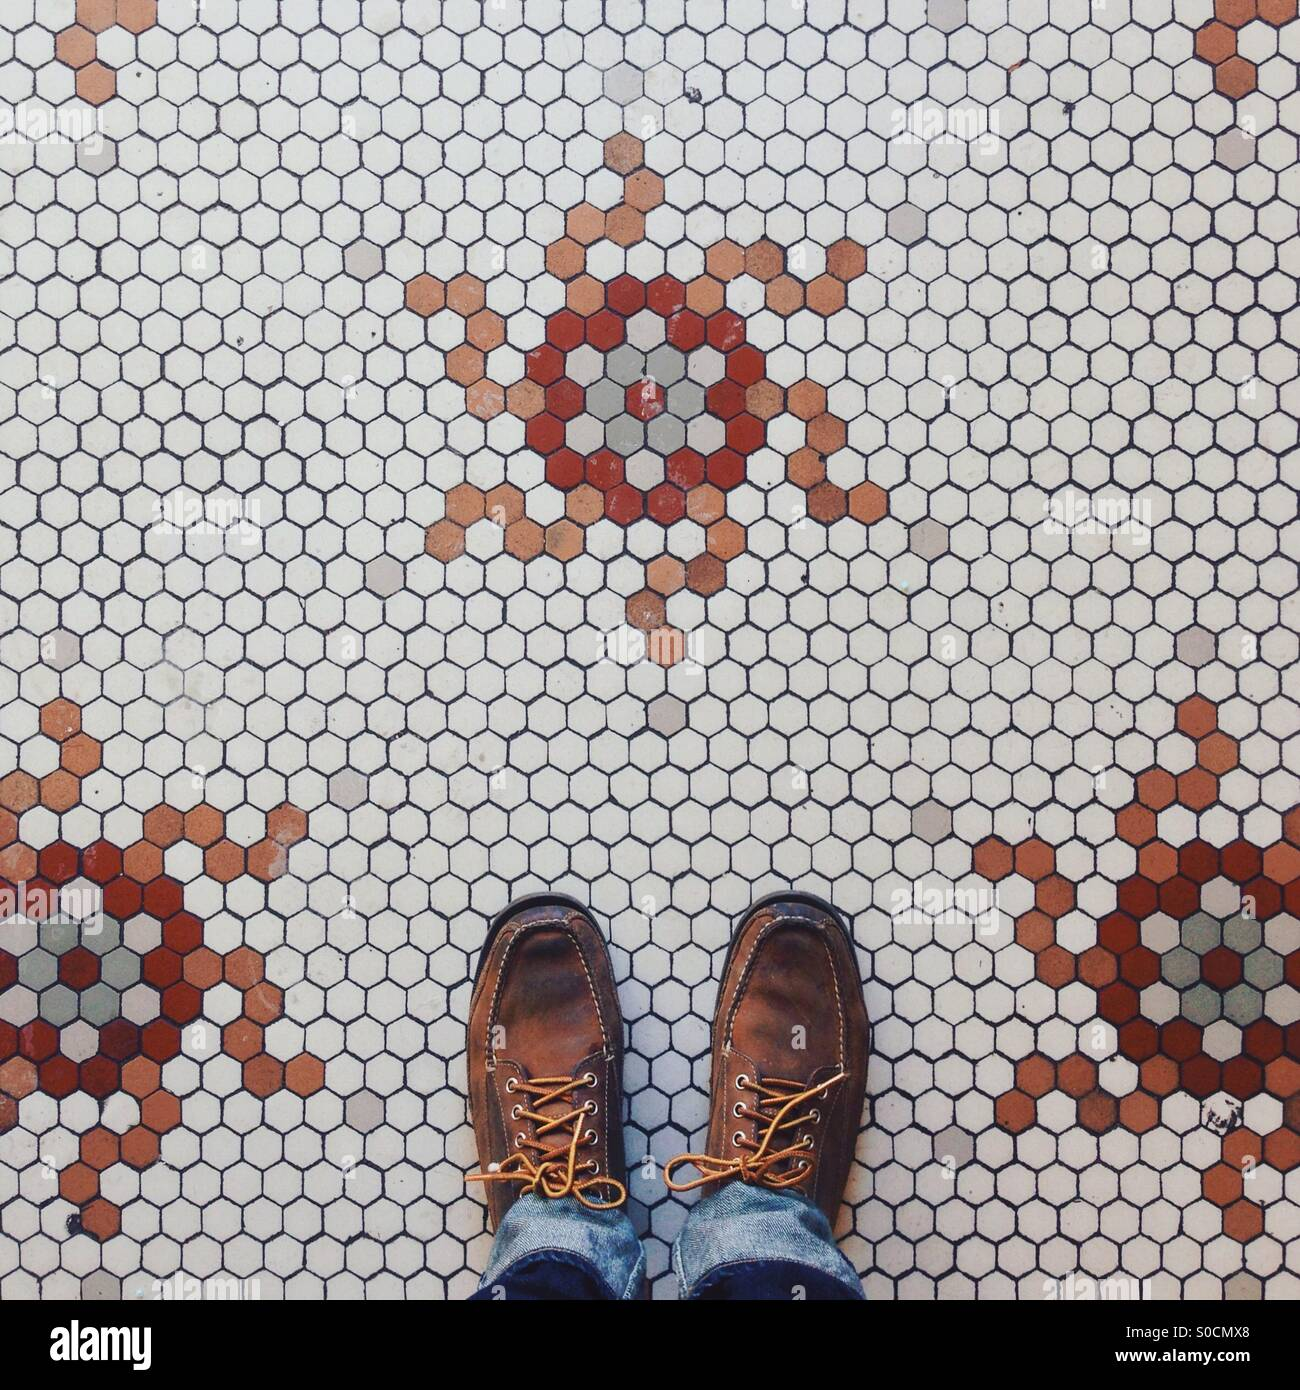 Tile floor and feet - Stock Image